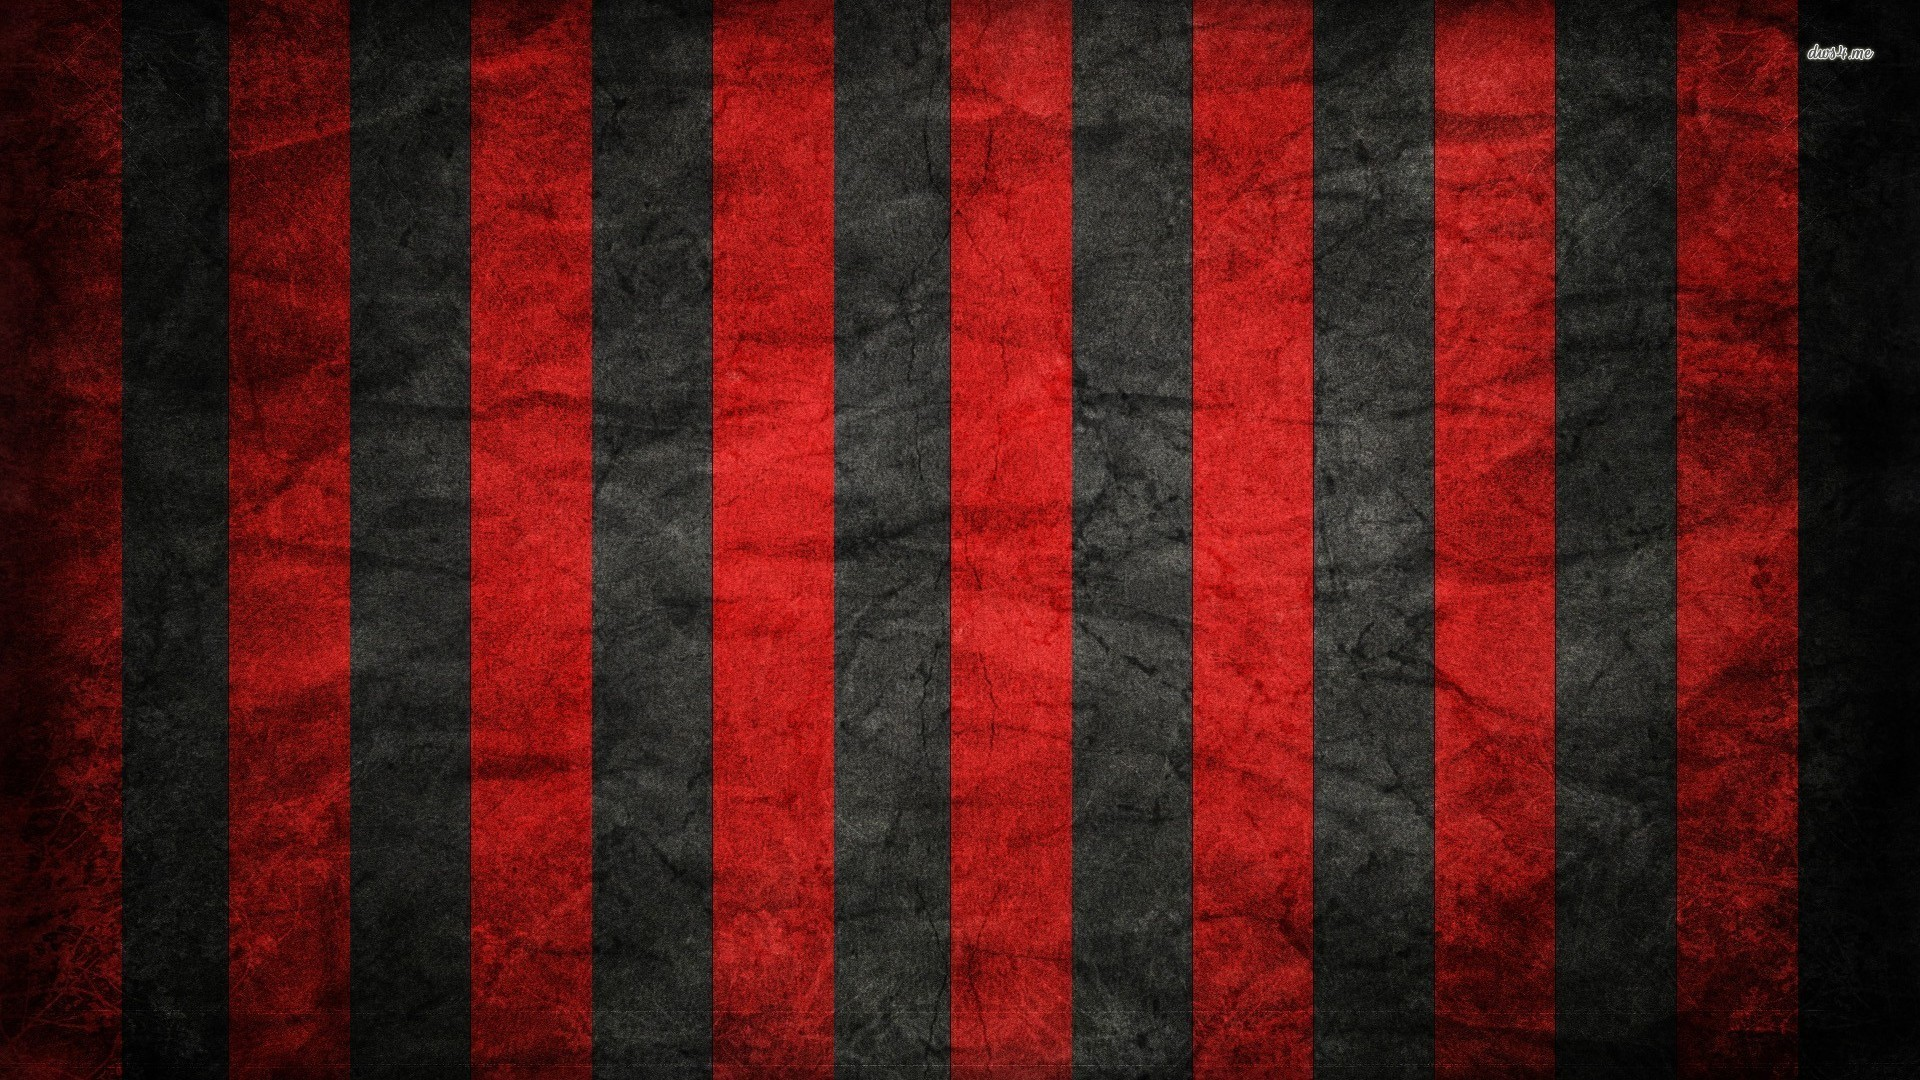 Red Black background ·① Download free beautiful full HD